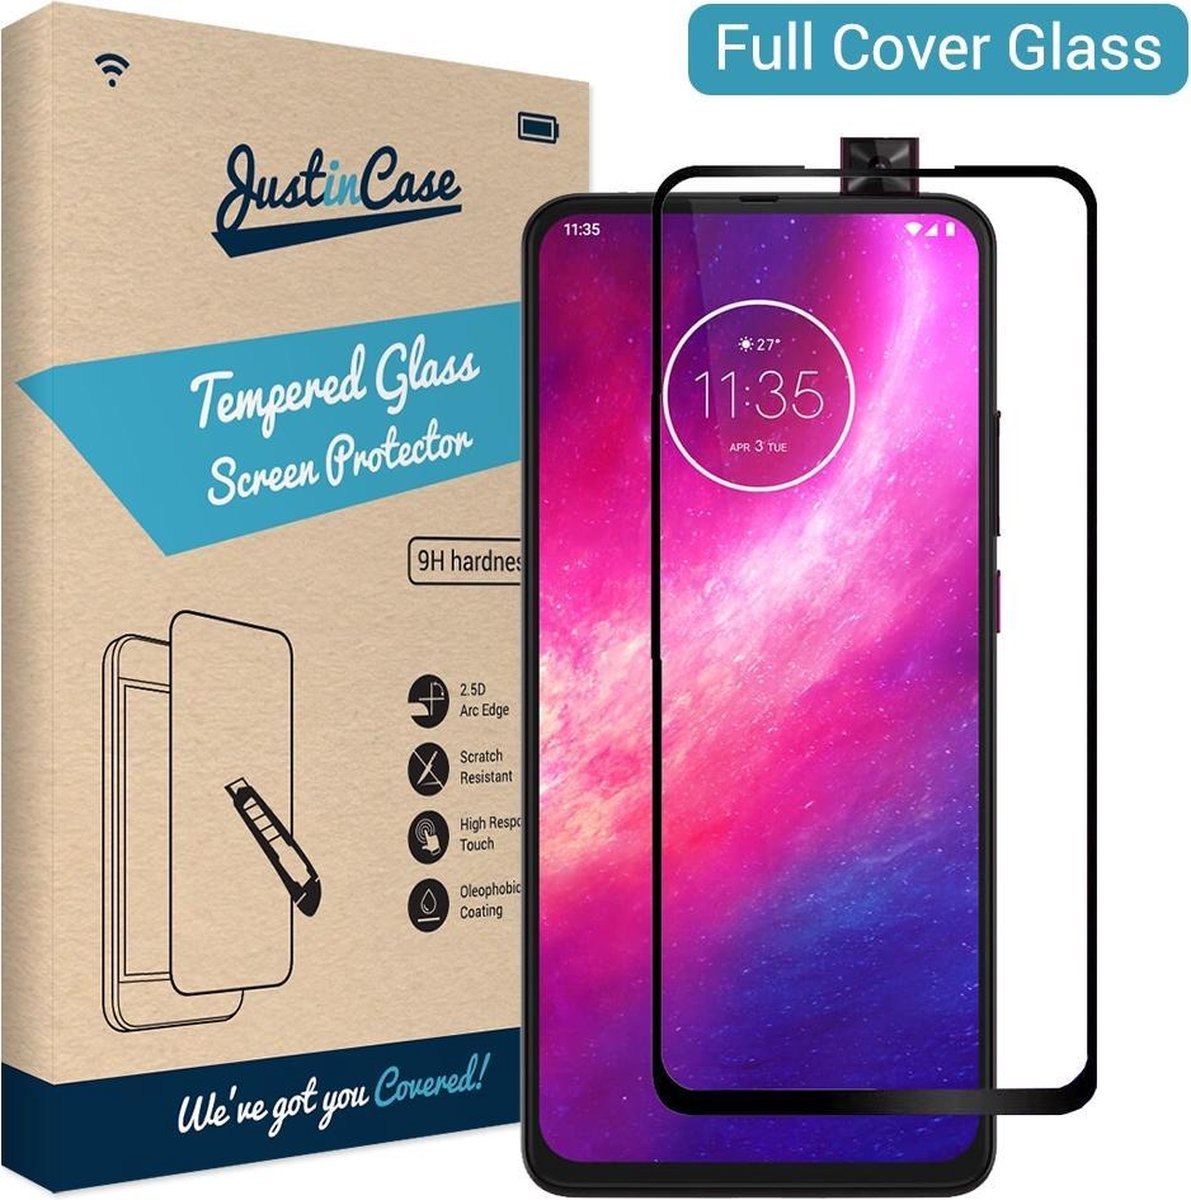 Afbeelding van product Just in Case Full Cover Tempered Glass Motorola One Hyper Protector - Black